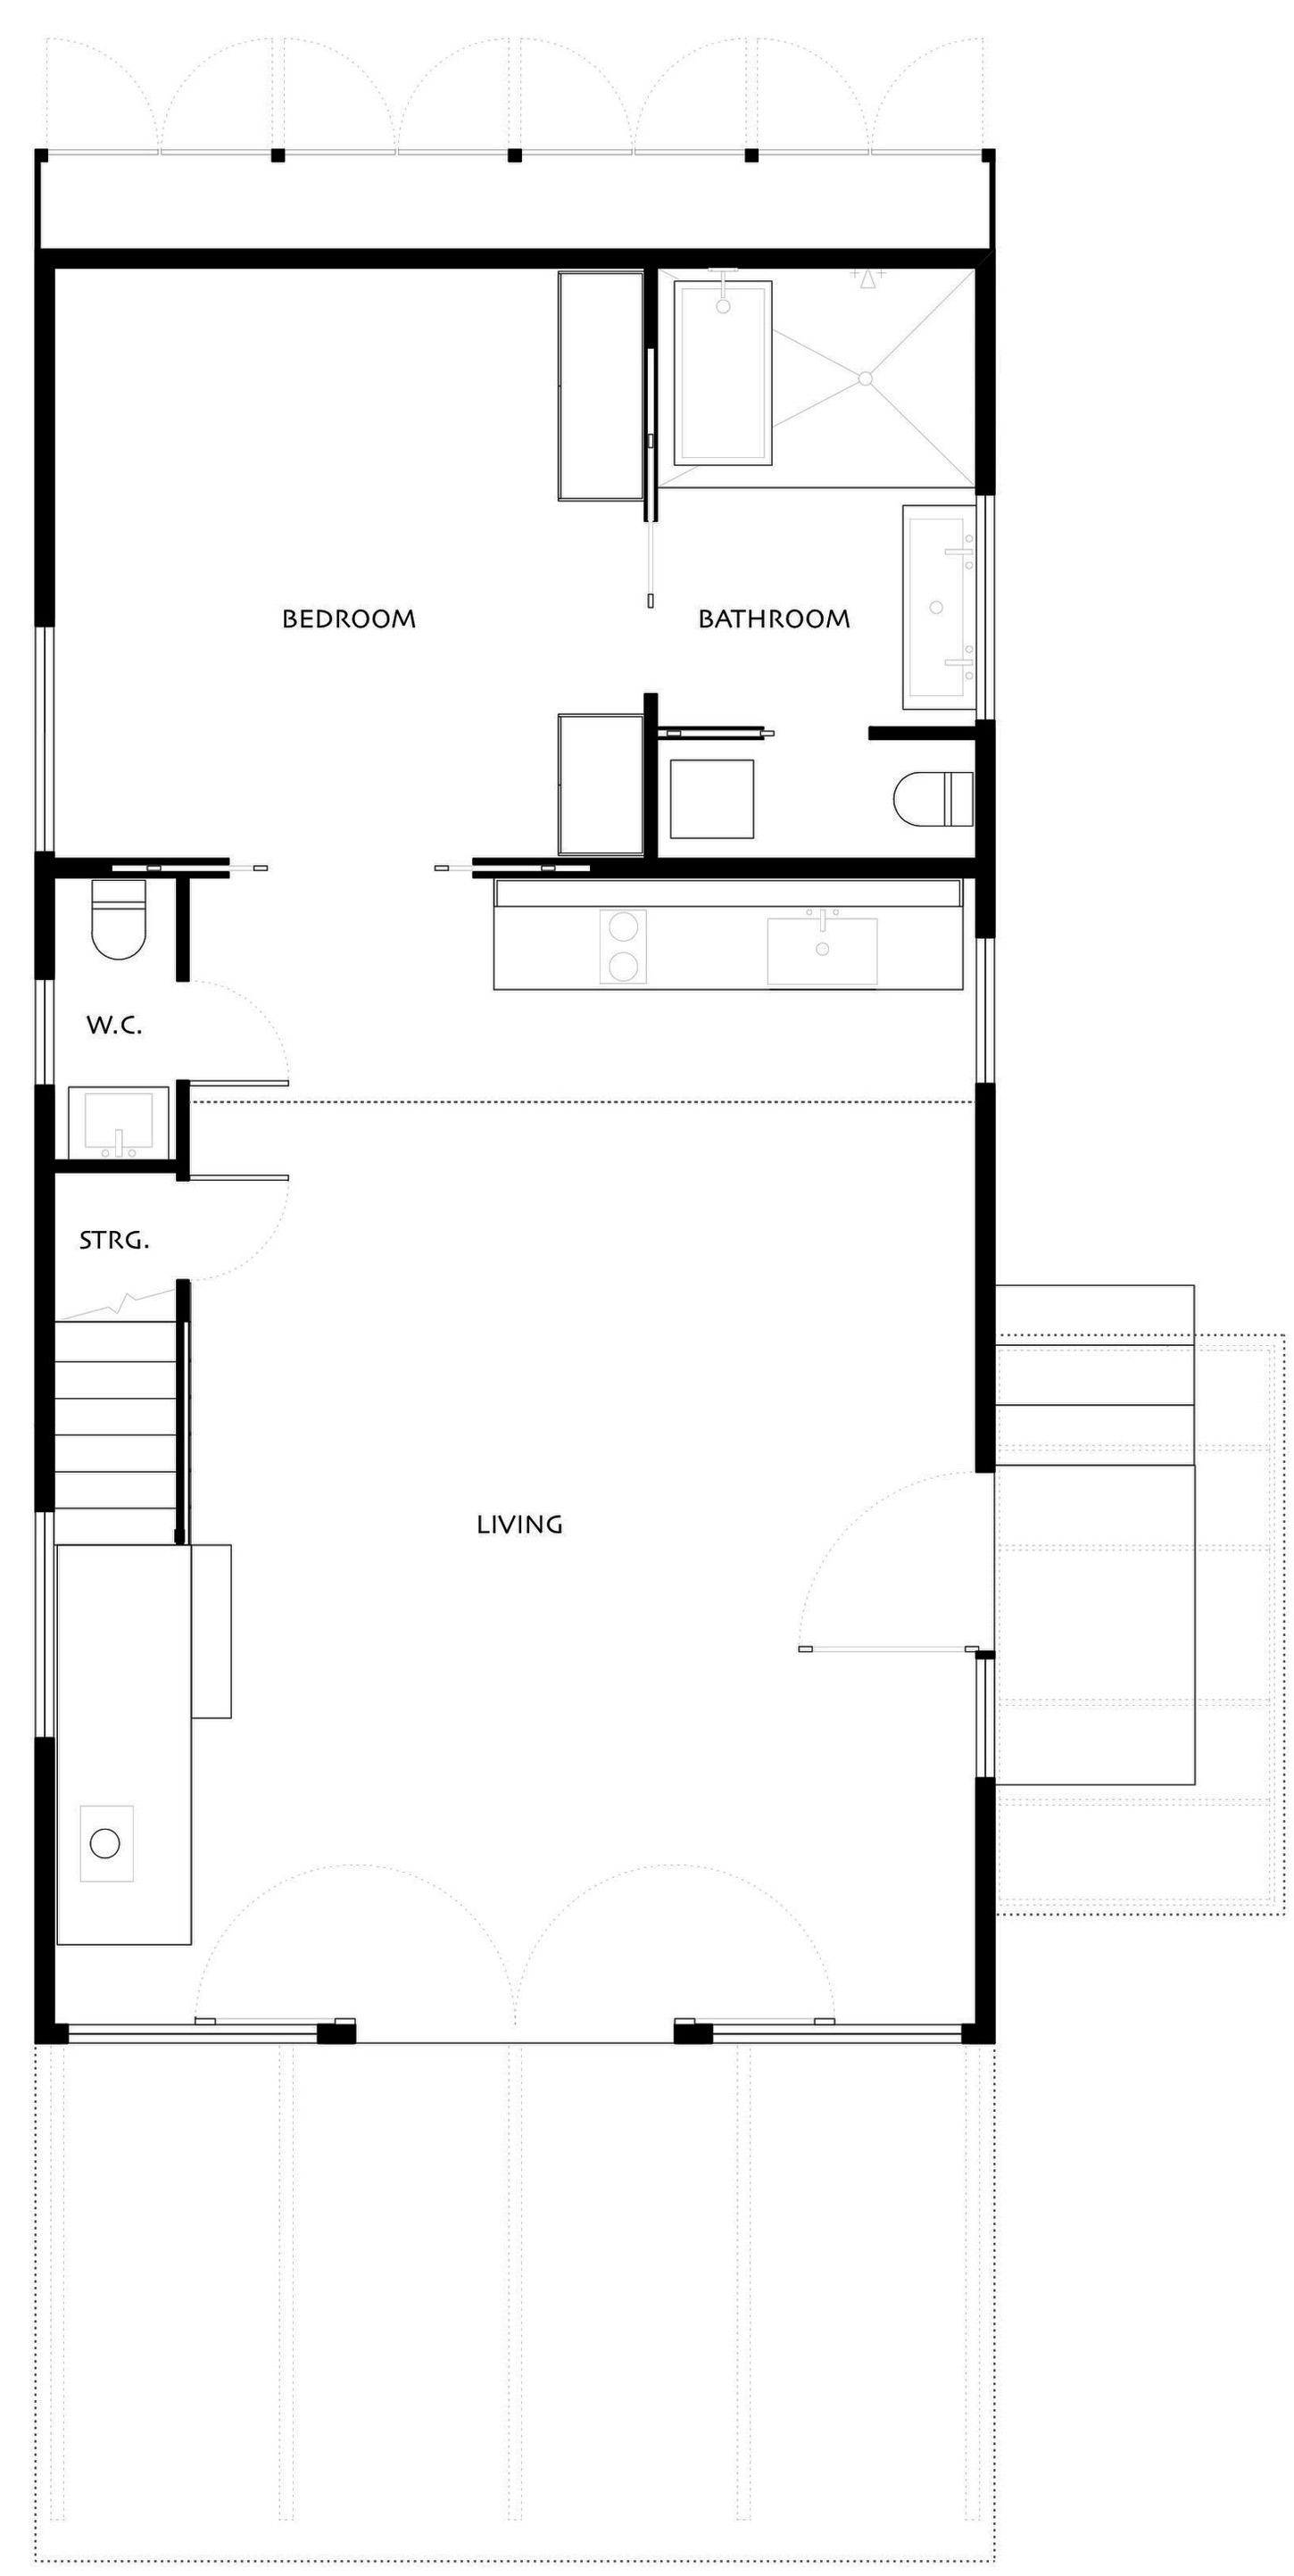 Ground Floor Plan, Simple Eco-Friendly Home Perched Above Lake Buchanan, Texas